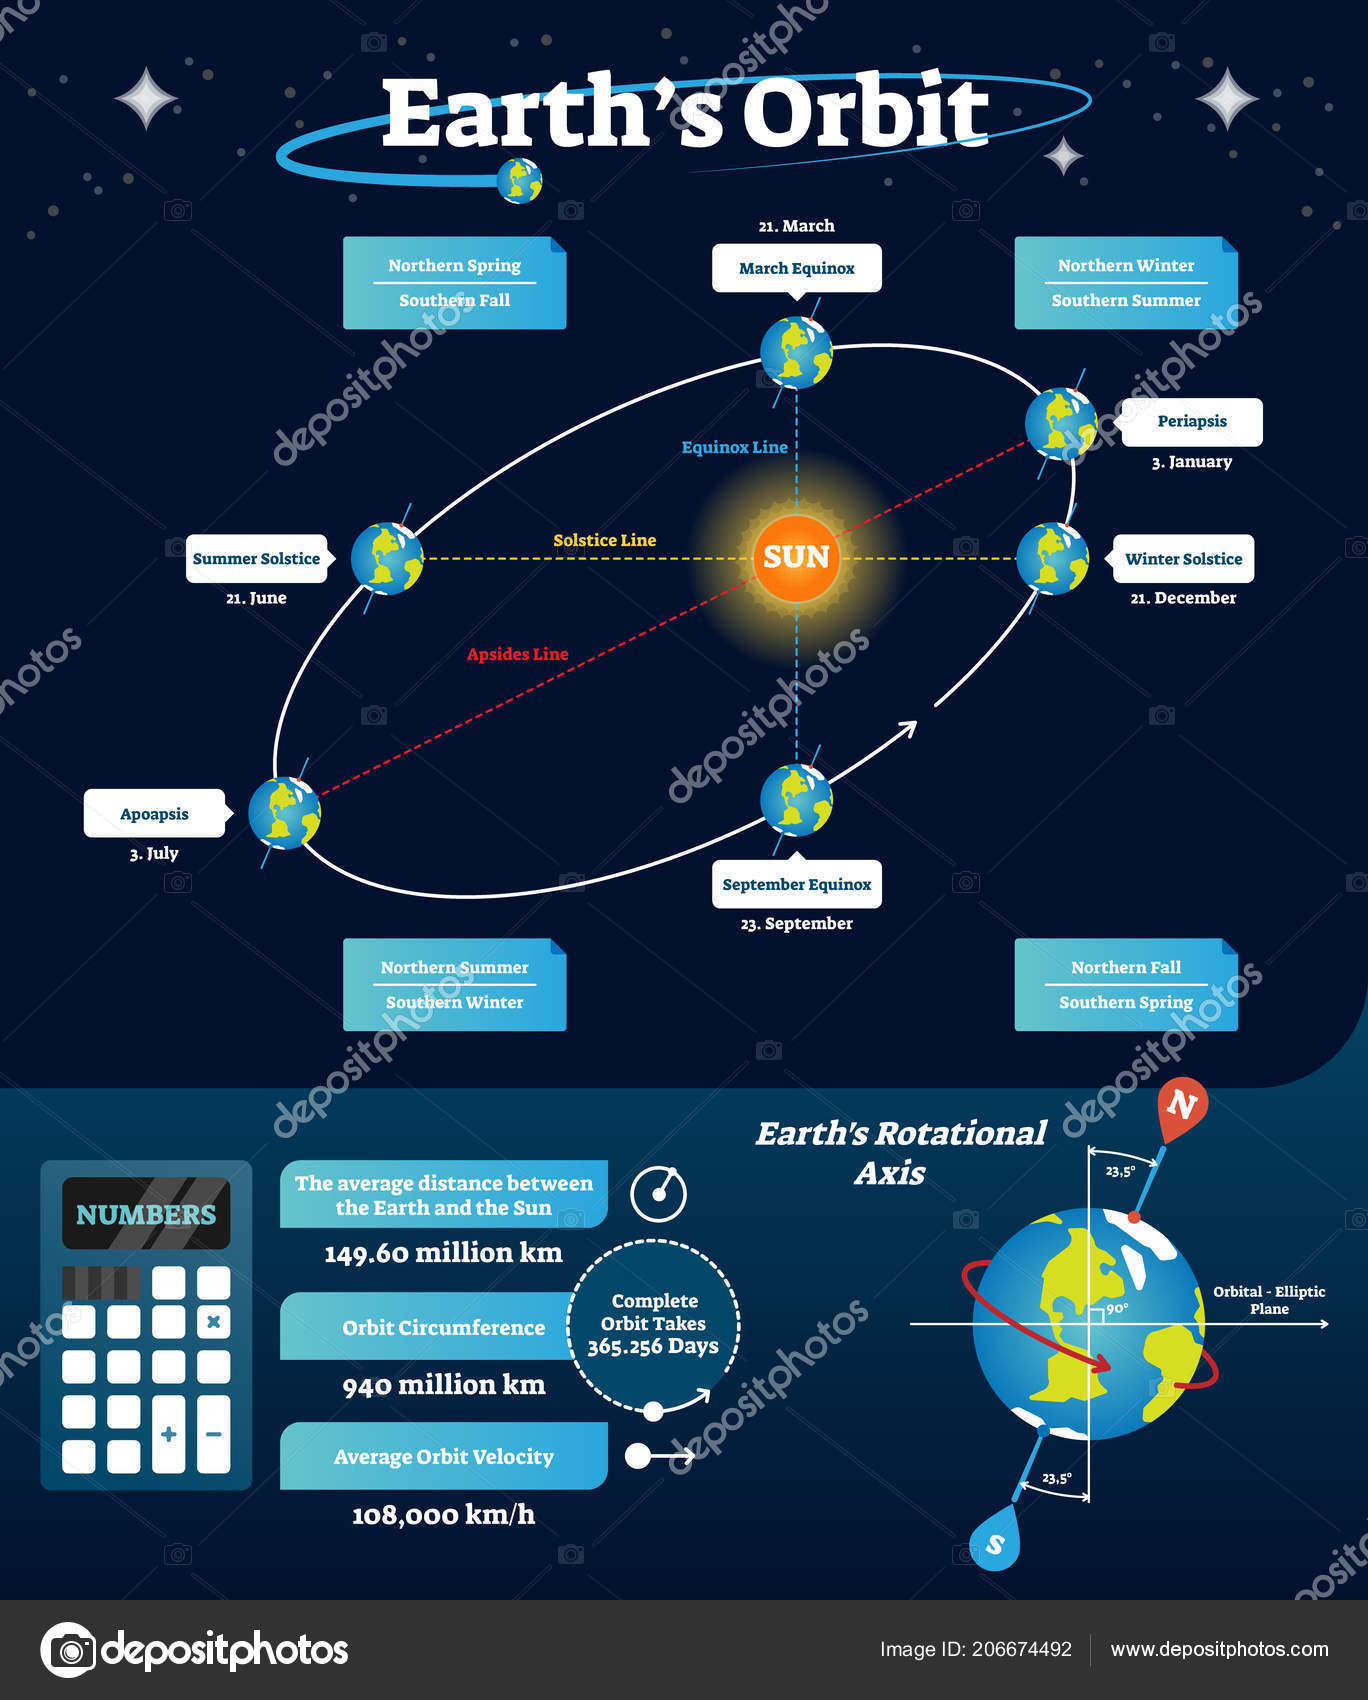 hight resolution of educational and labeled scheme with equinox solstice and apsides line diagram with rotational axis and orbital elliptic line northern spring and